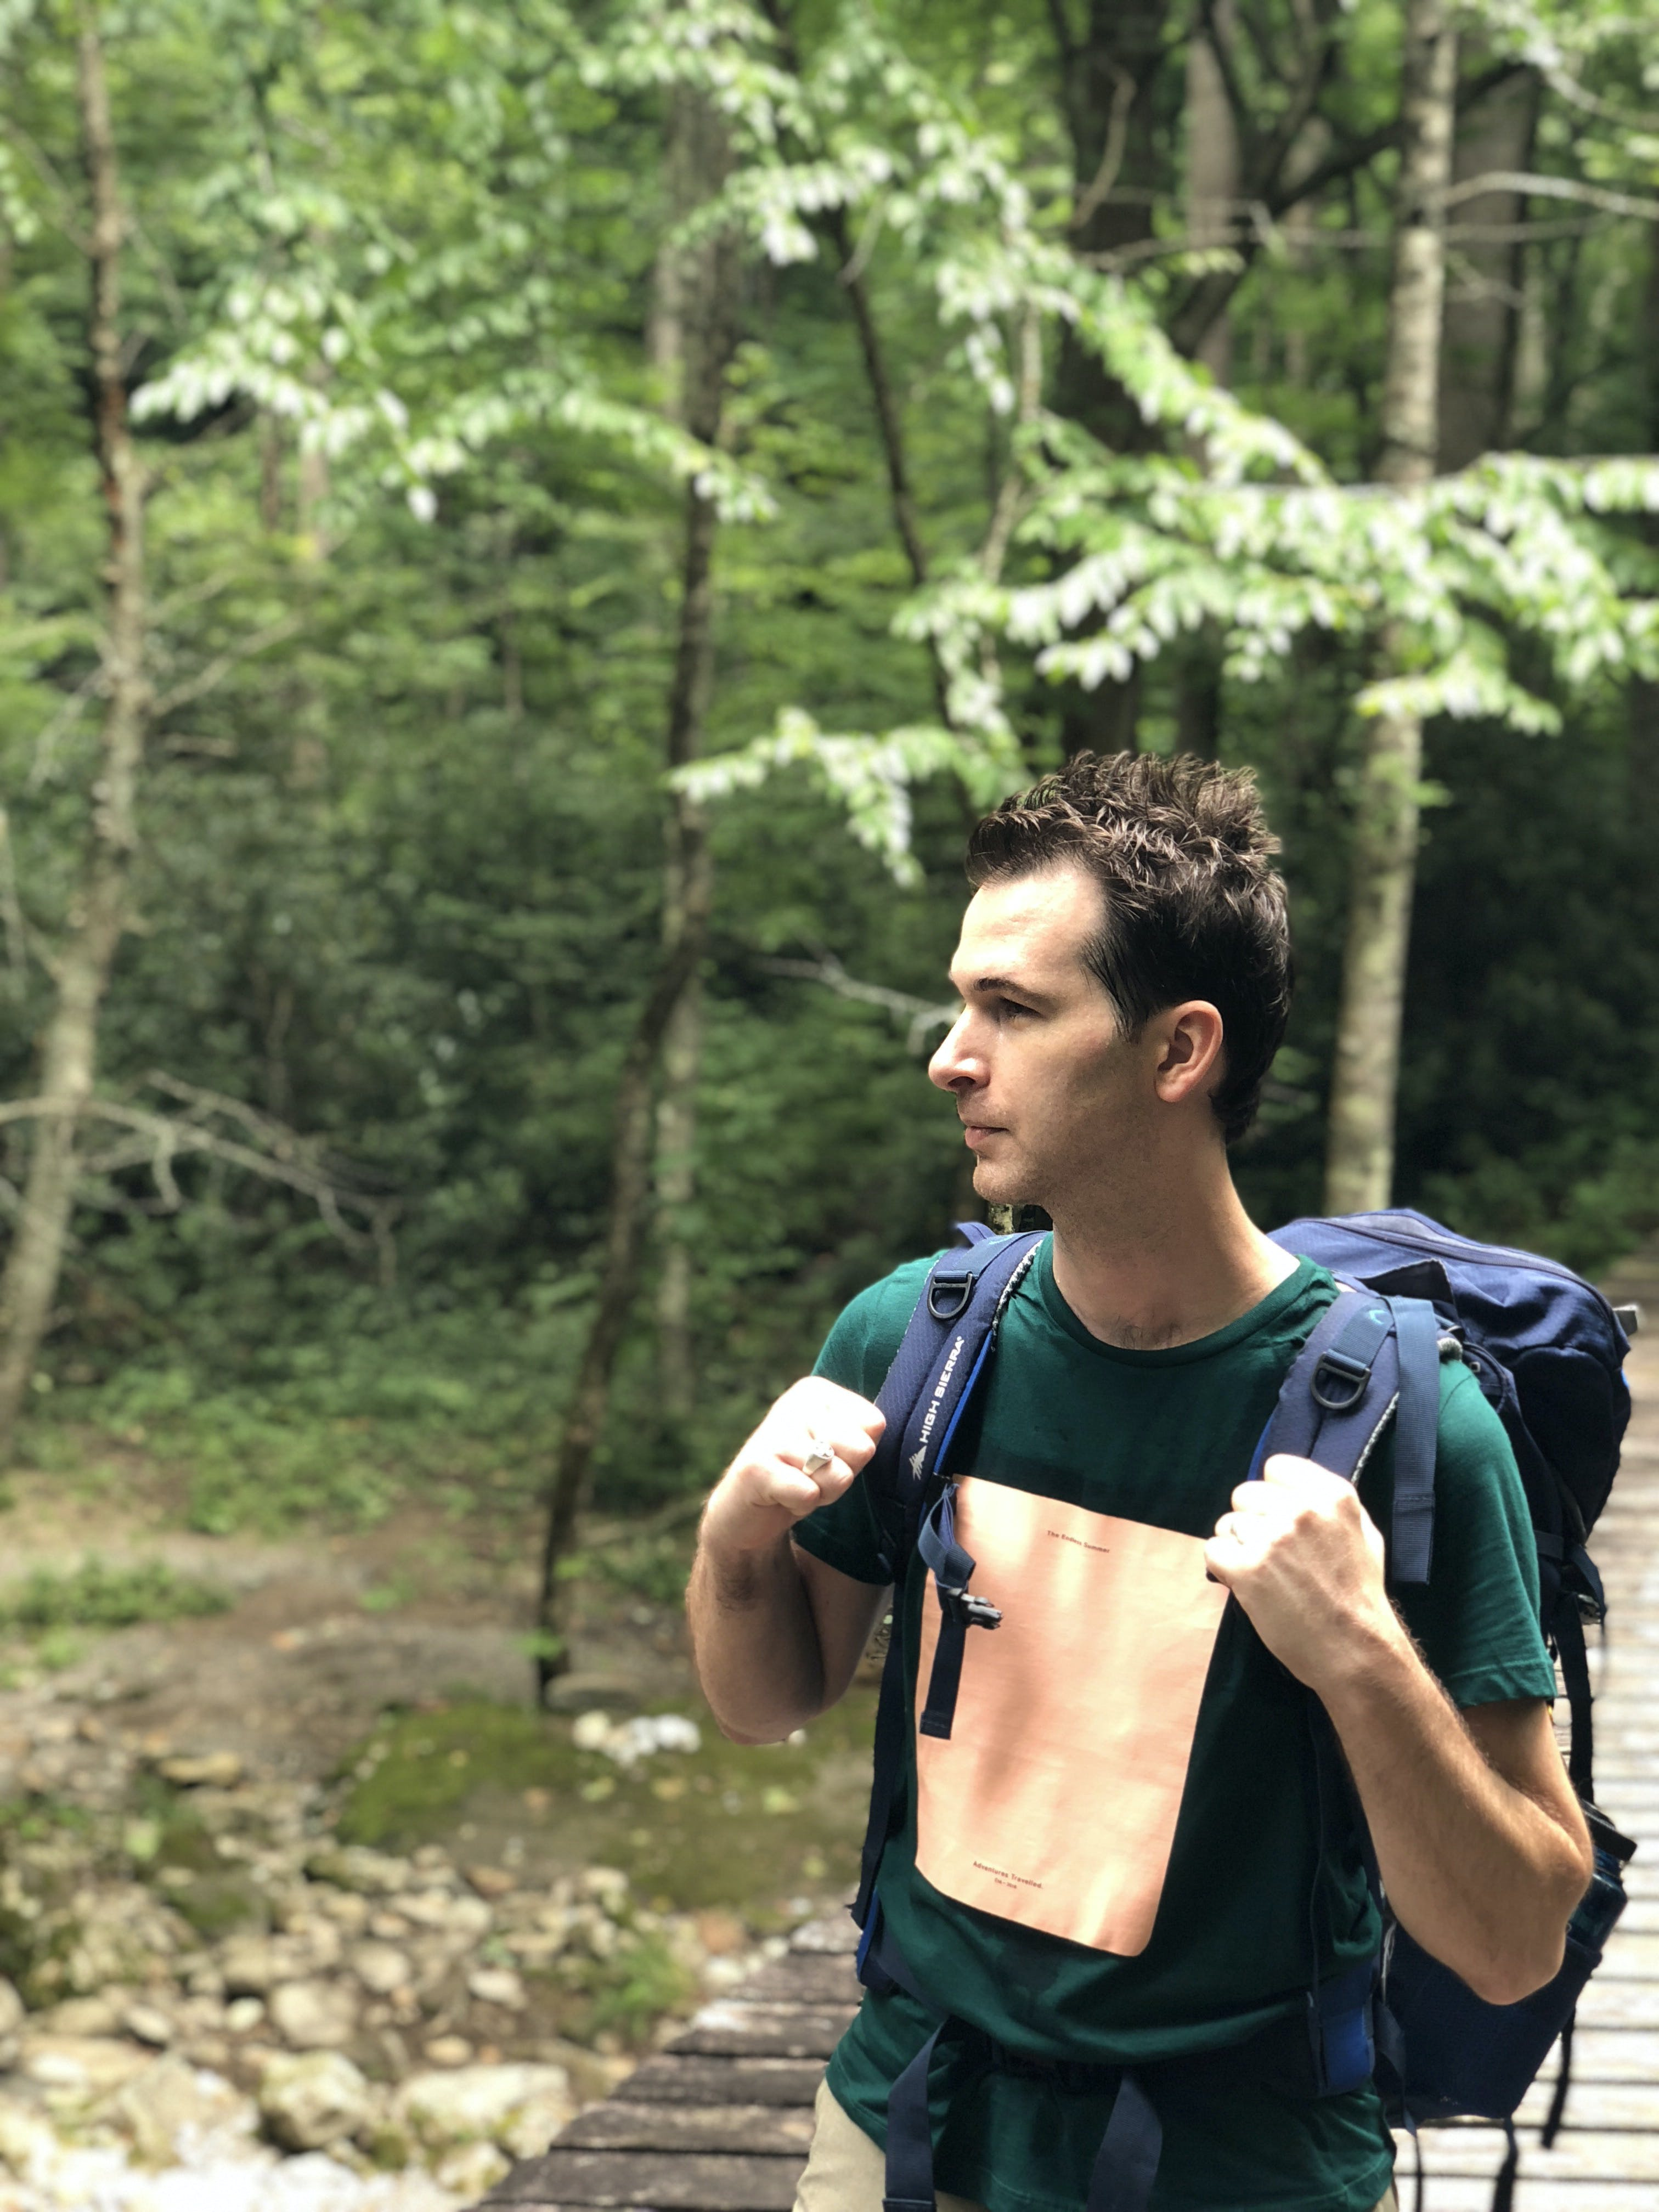 Free stock photo of backpacking hiking forest